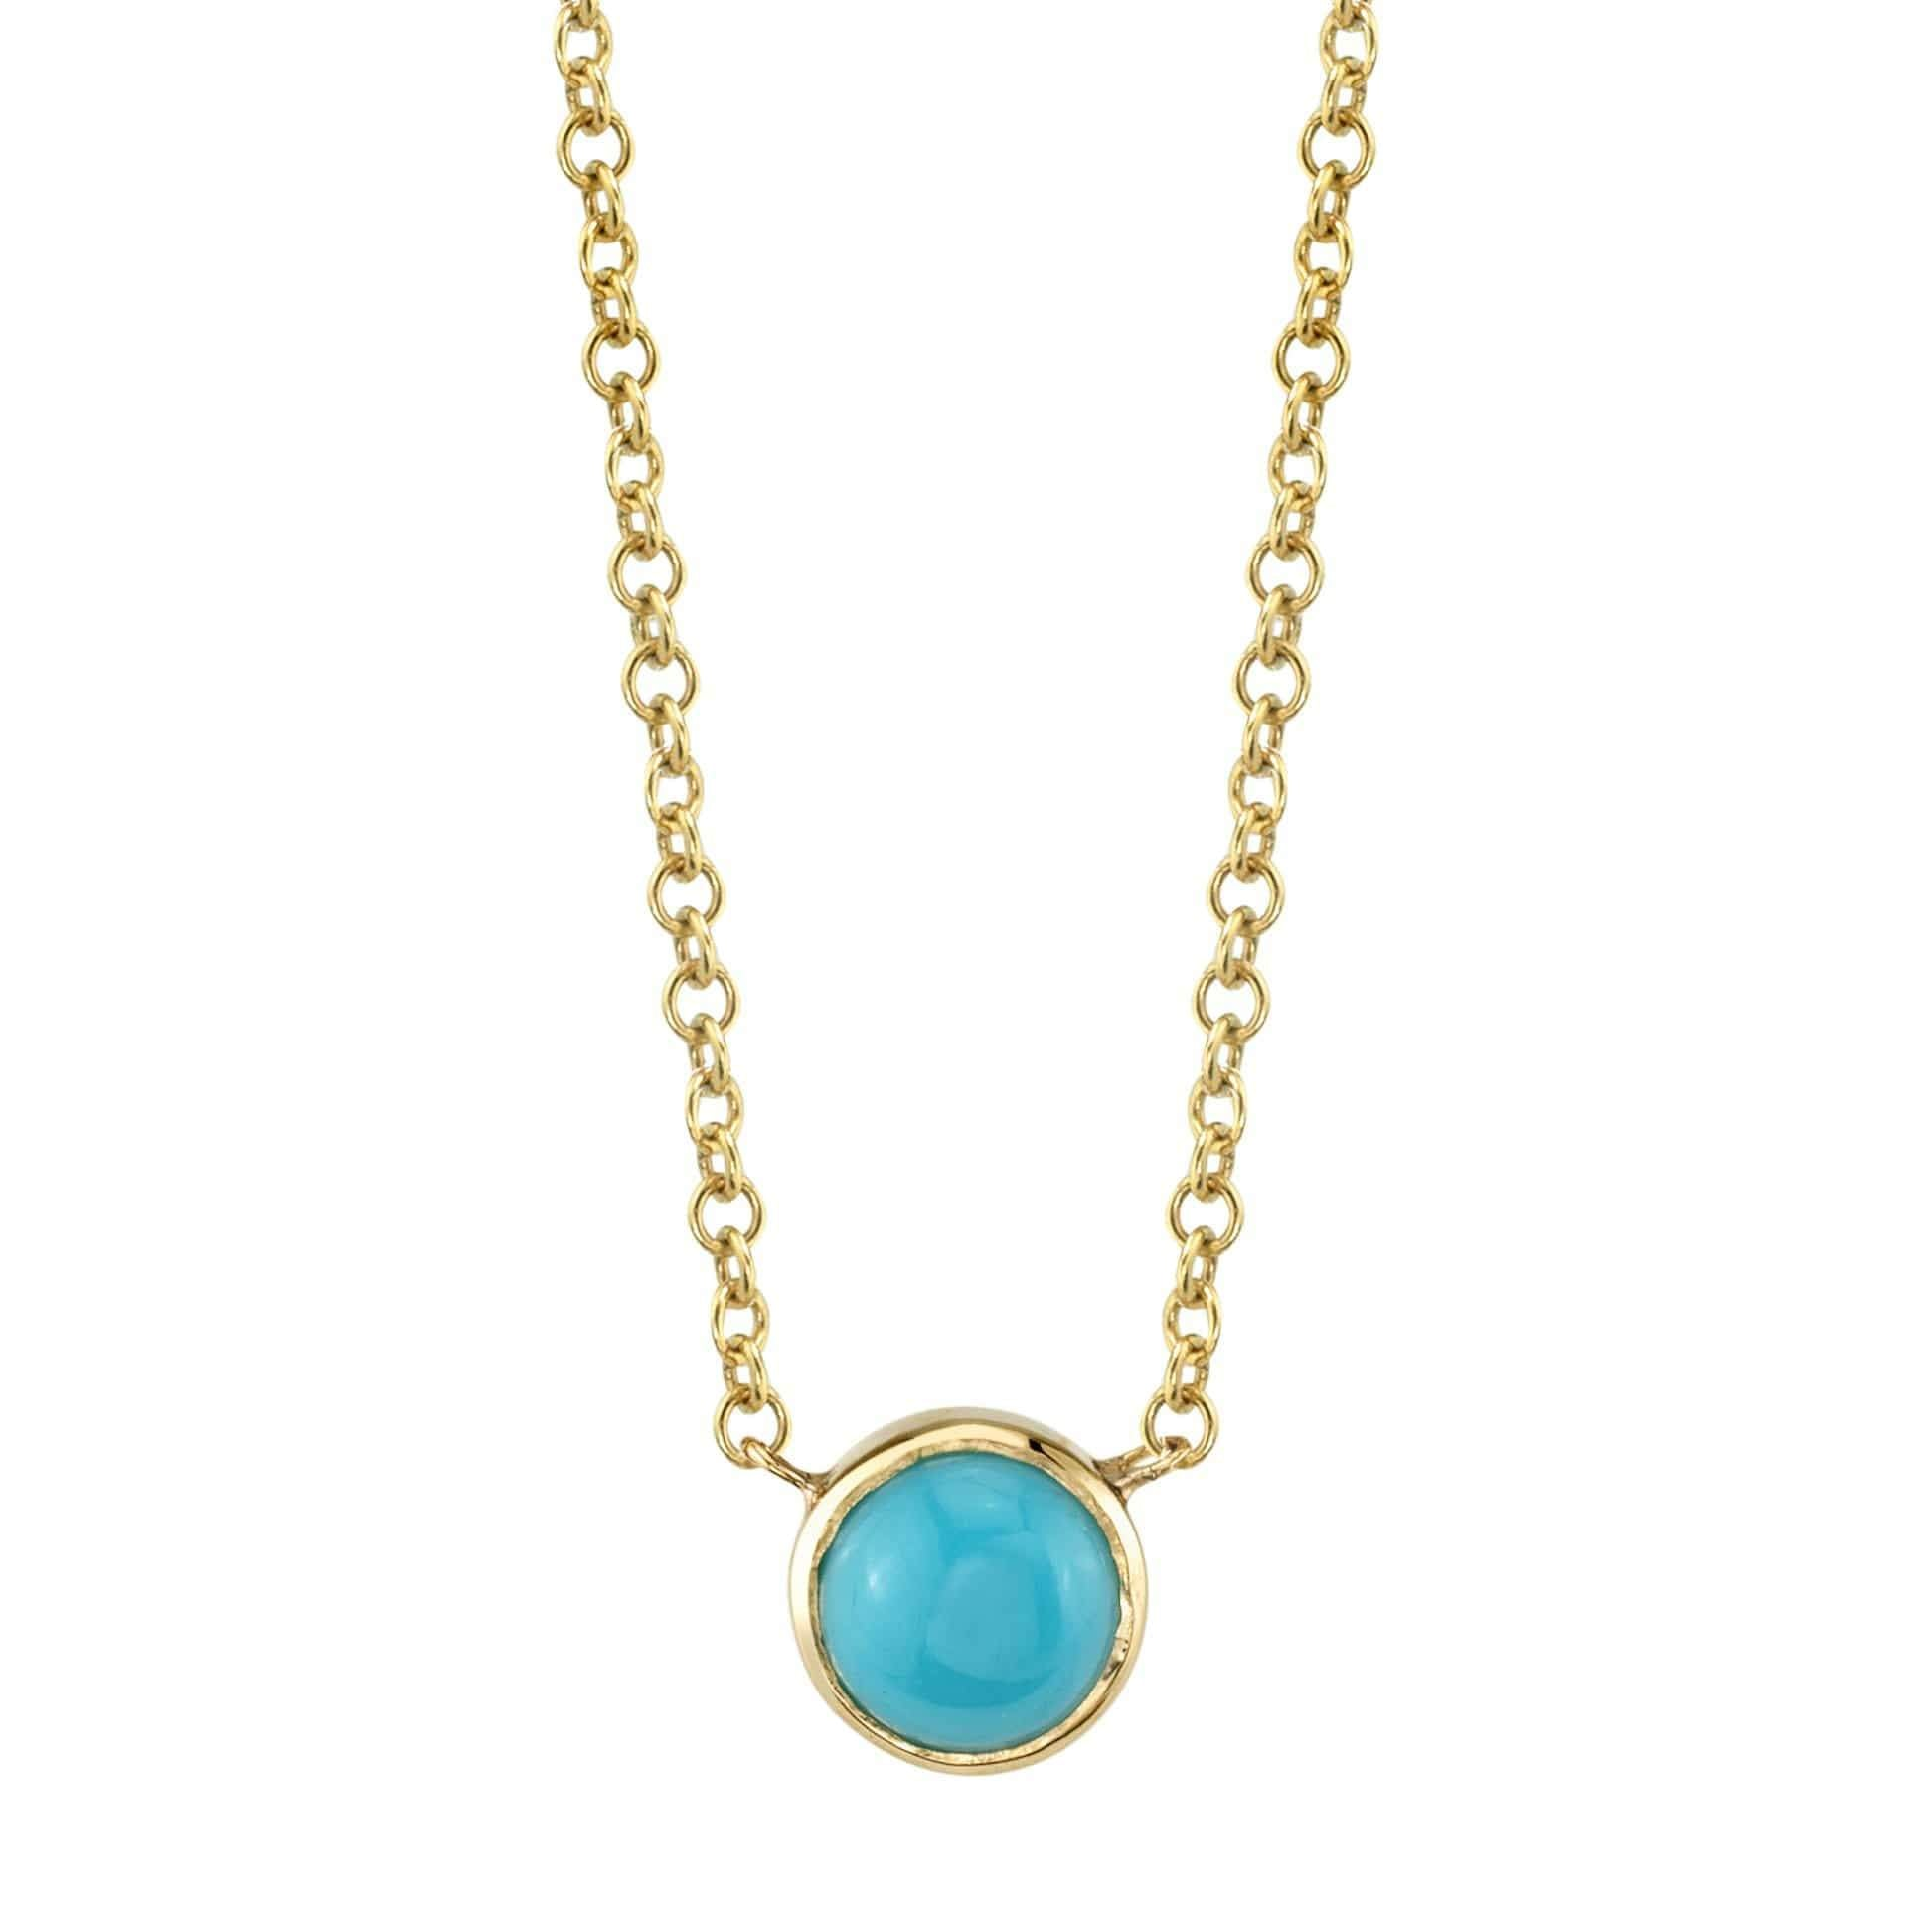 Turquoise Solitaire Necklace